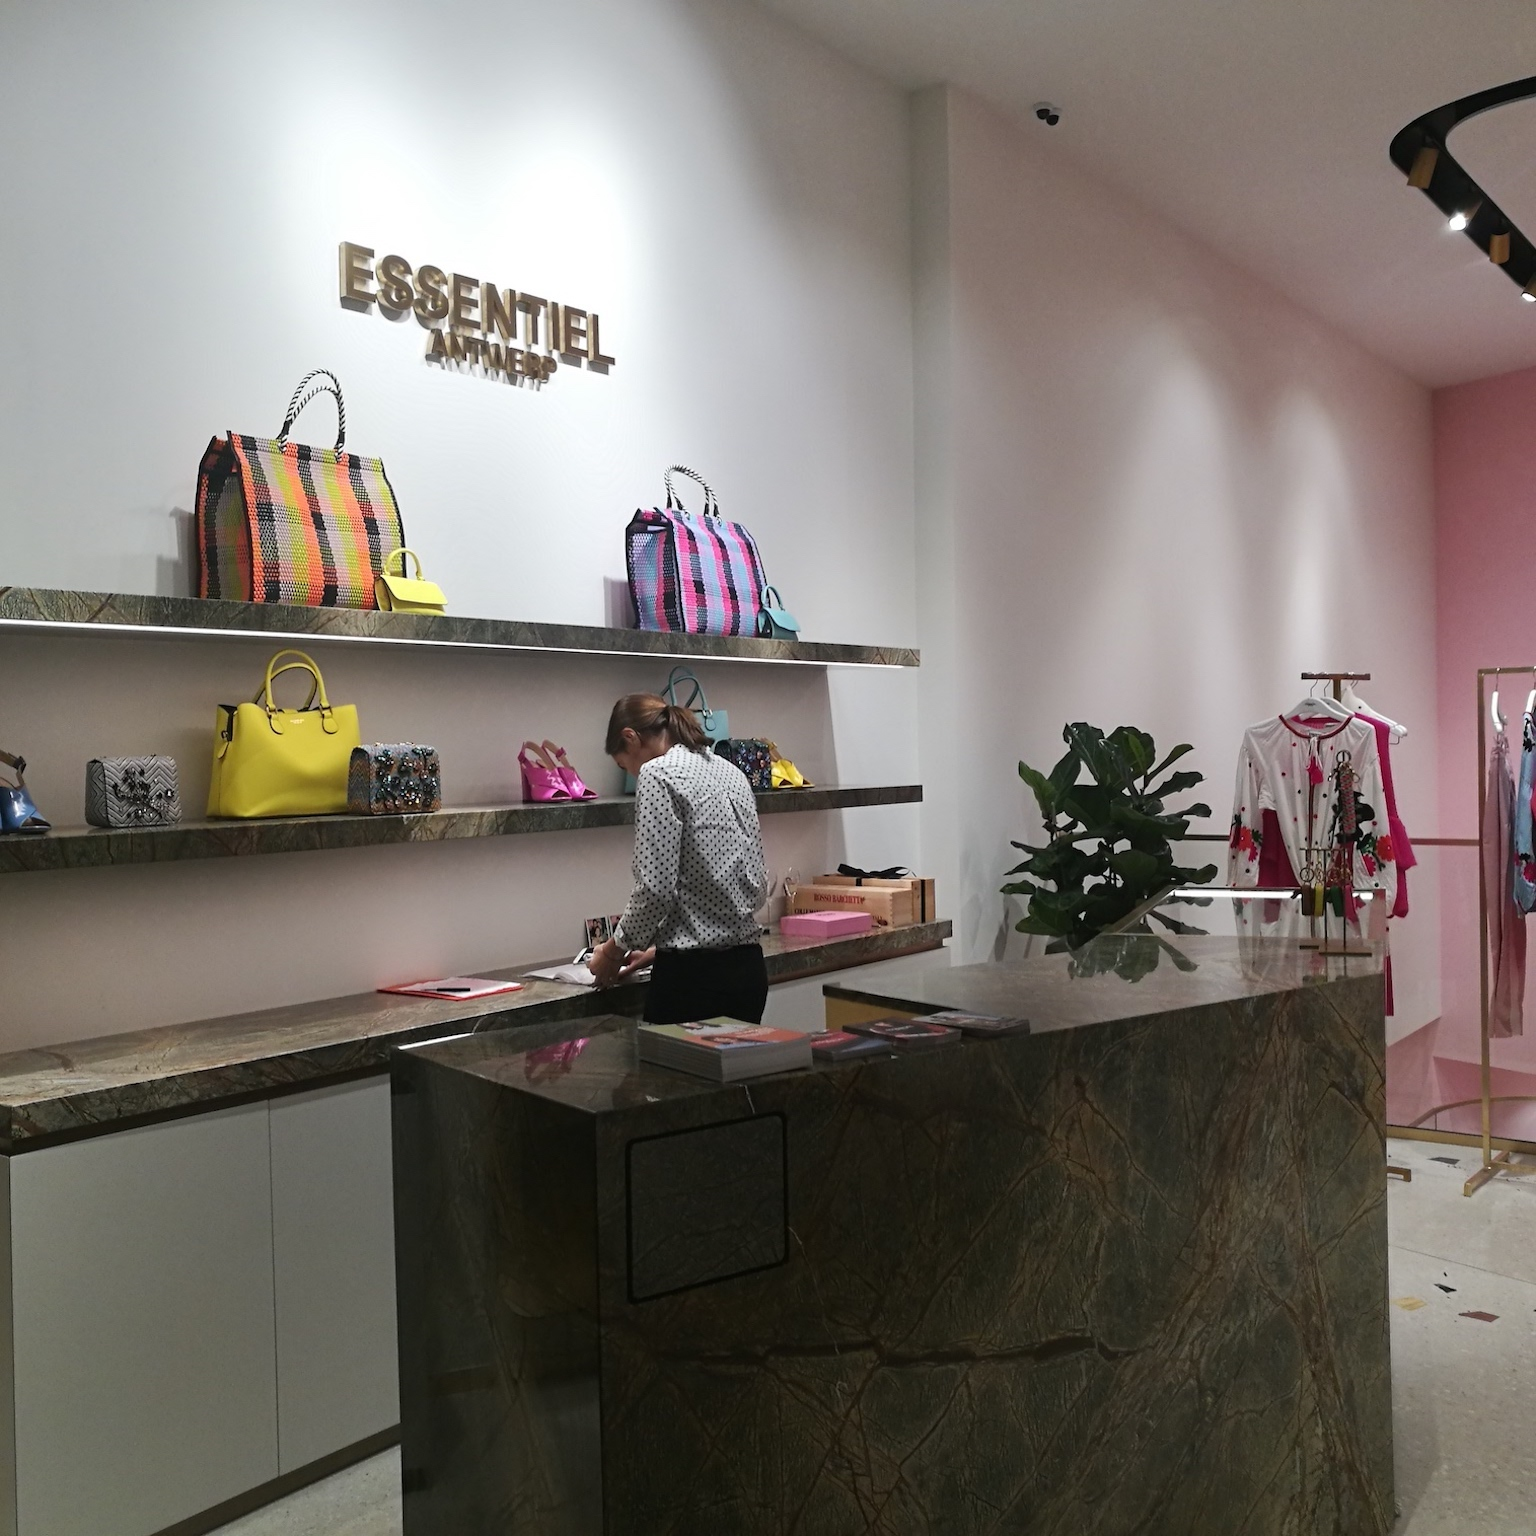 Essentiel opens huge women's shop in Antwerp